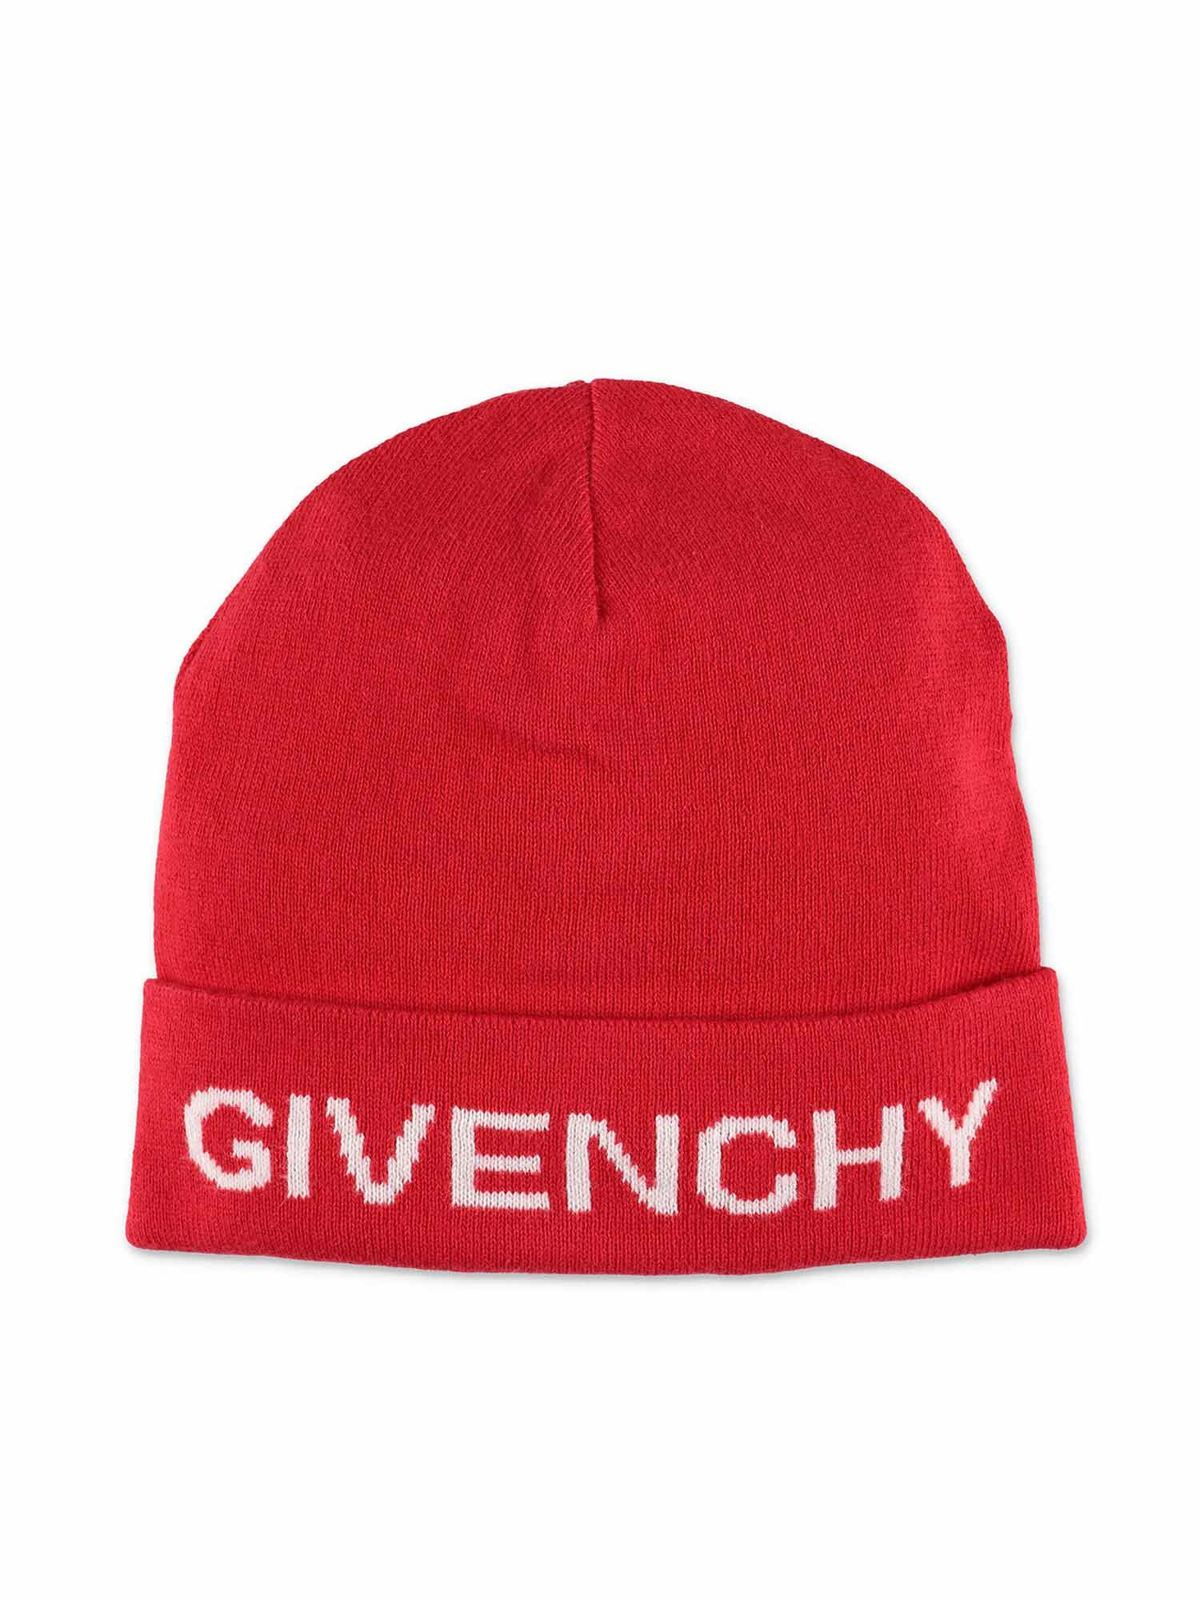 Givenchy RED BEANIE WITH LOGO